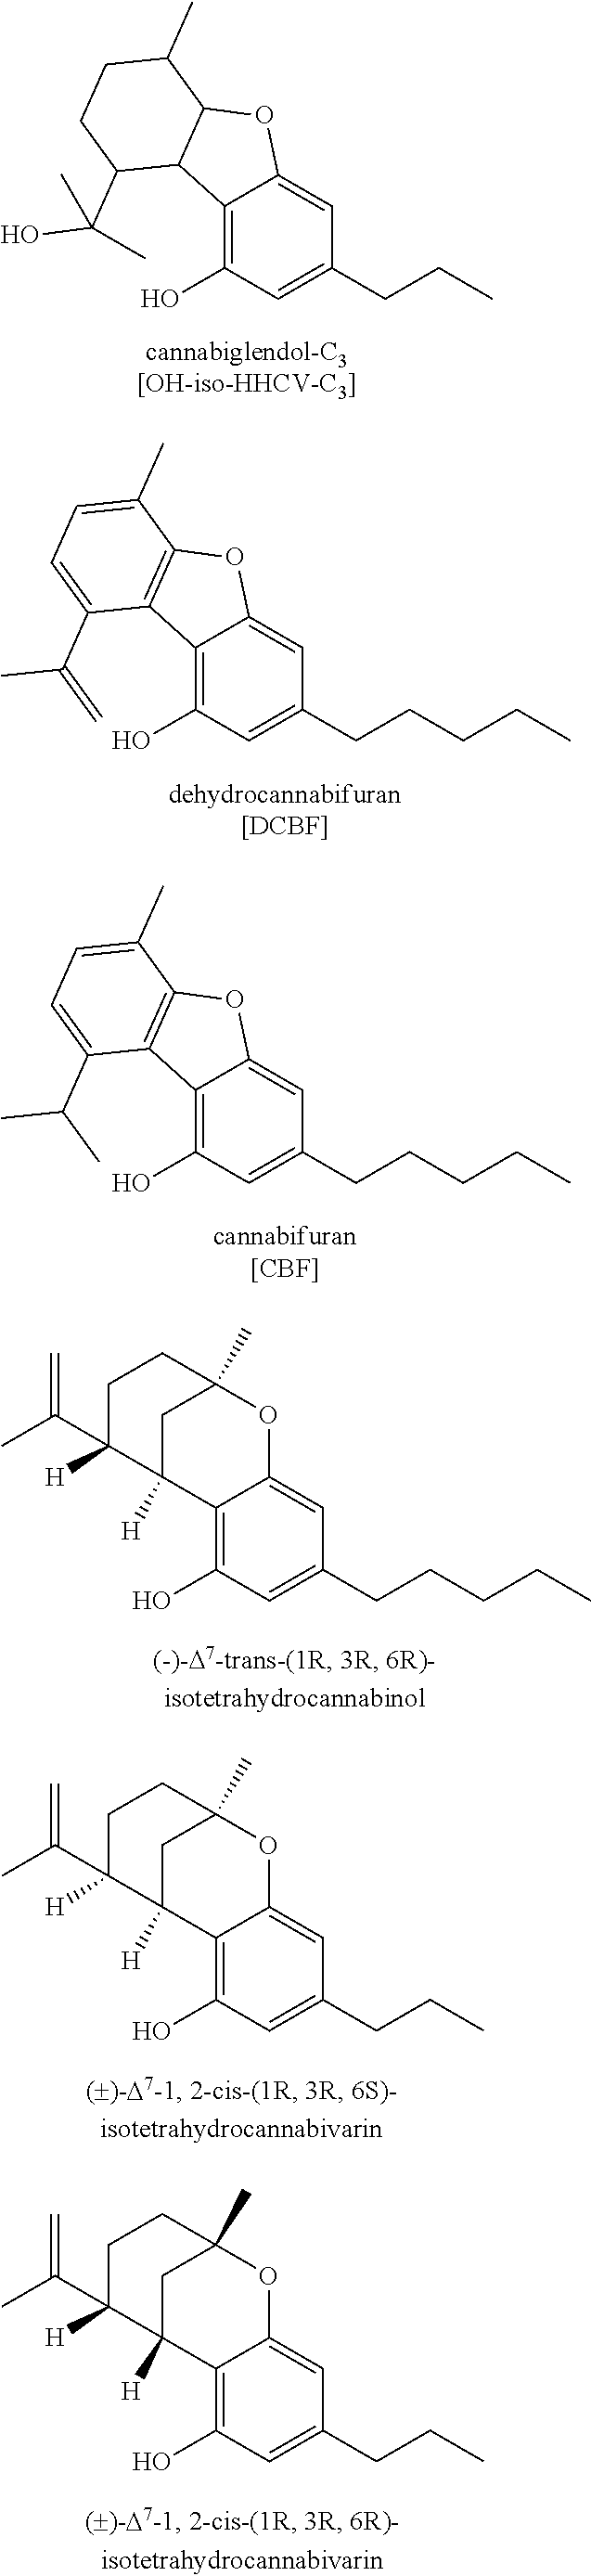 US20160346339A1 - Methods for preparation of cannabis oil